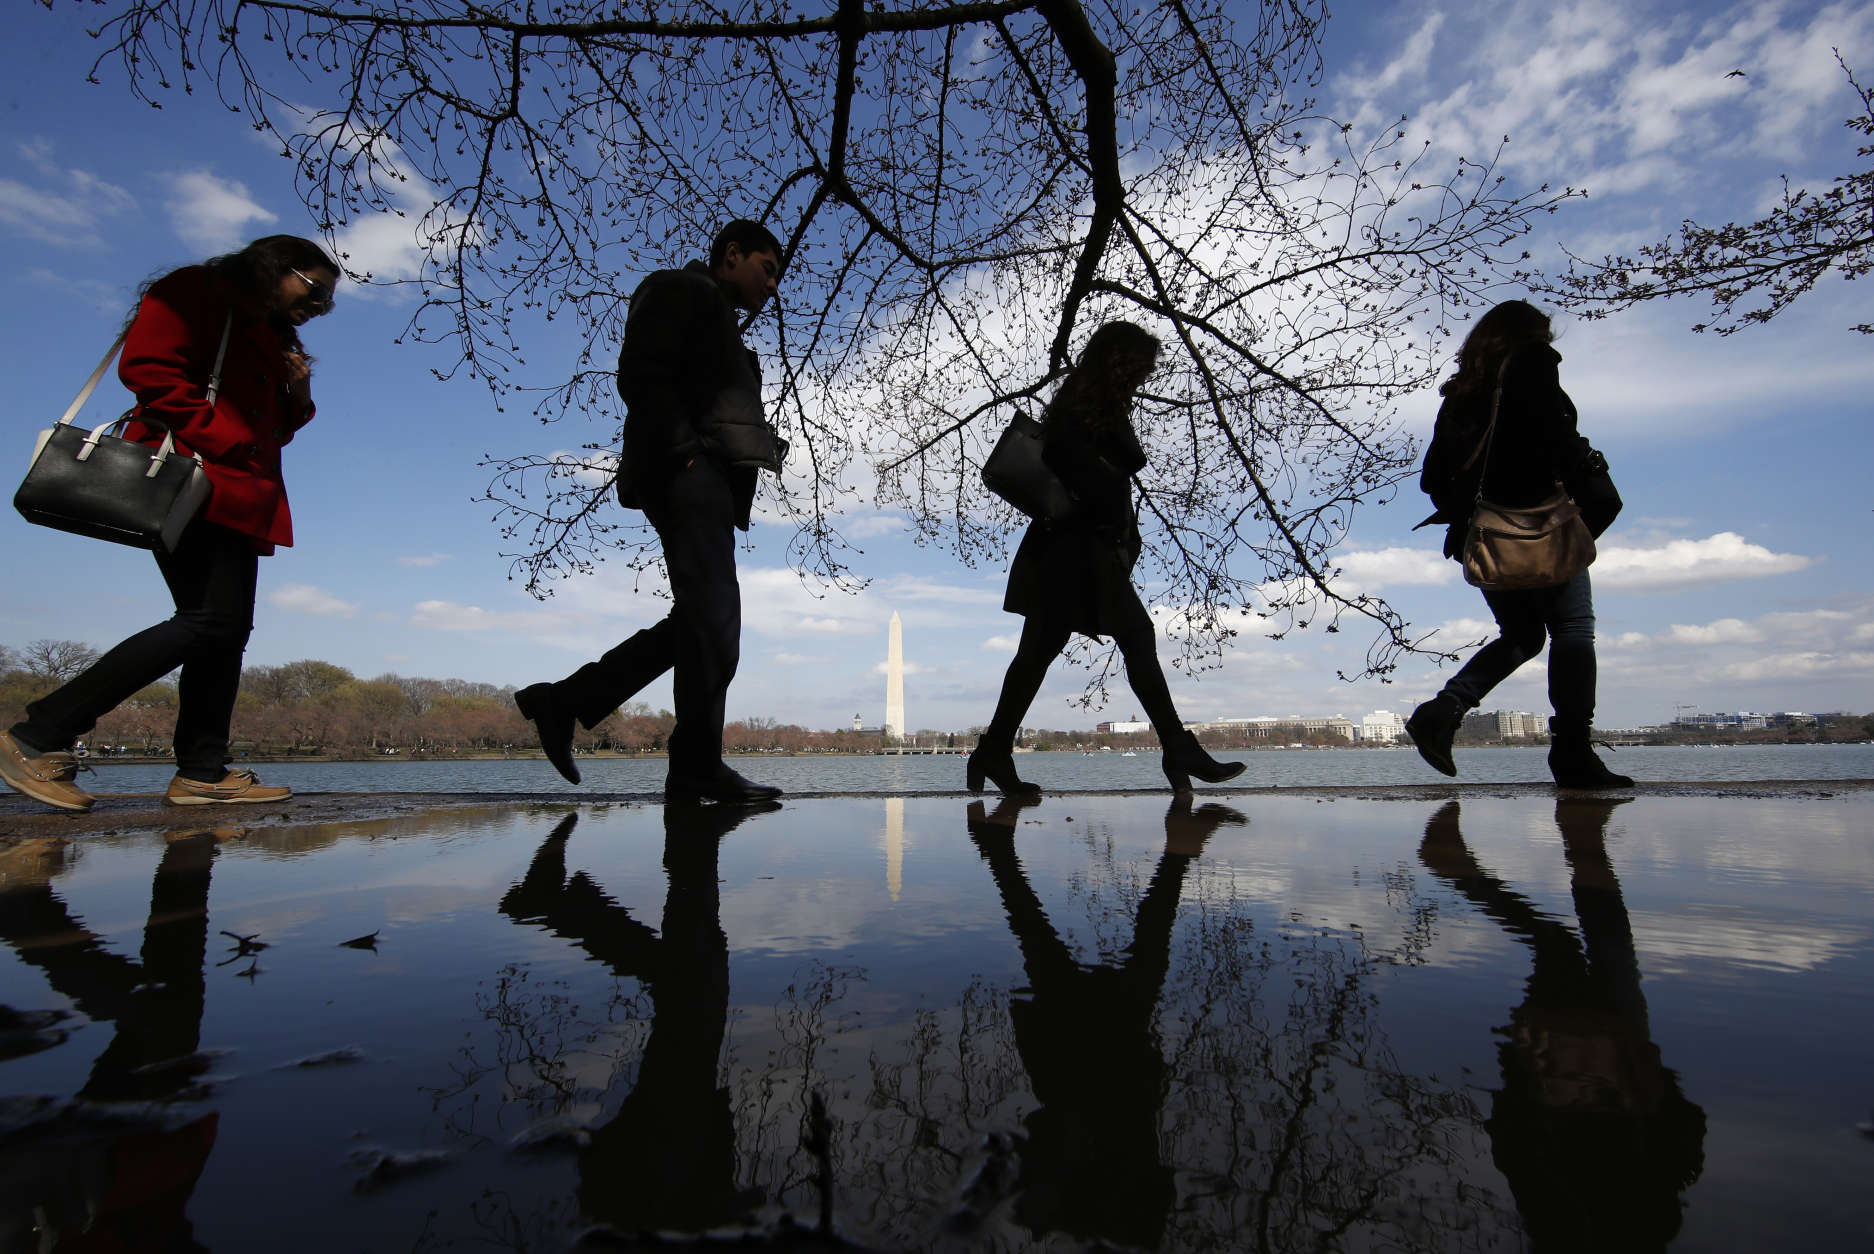 People skirt the edge of a puddle as they walk around the Tidal Basin under the cherry trees with the Washington Monument in the background, Saturday, March 18, 2017, in Washington. (AP Photo/Alex Brandon)